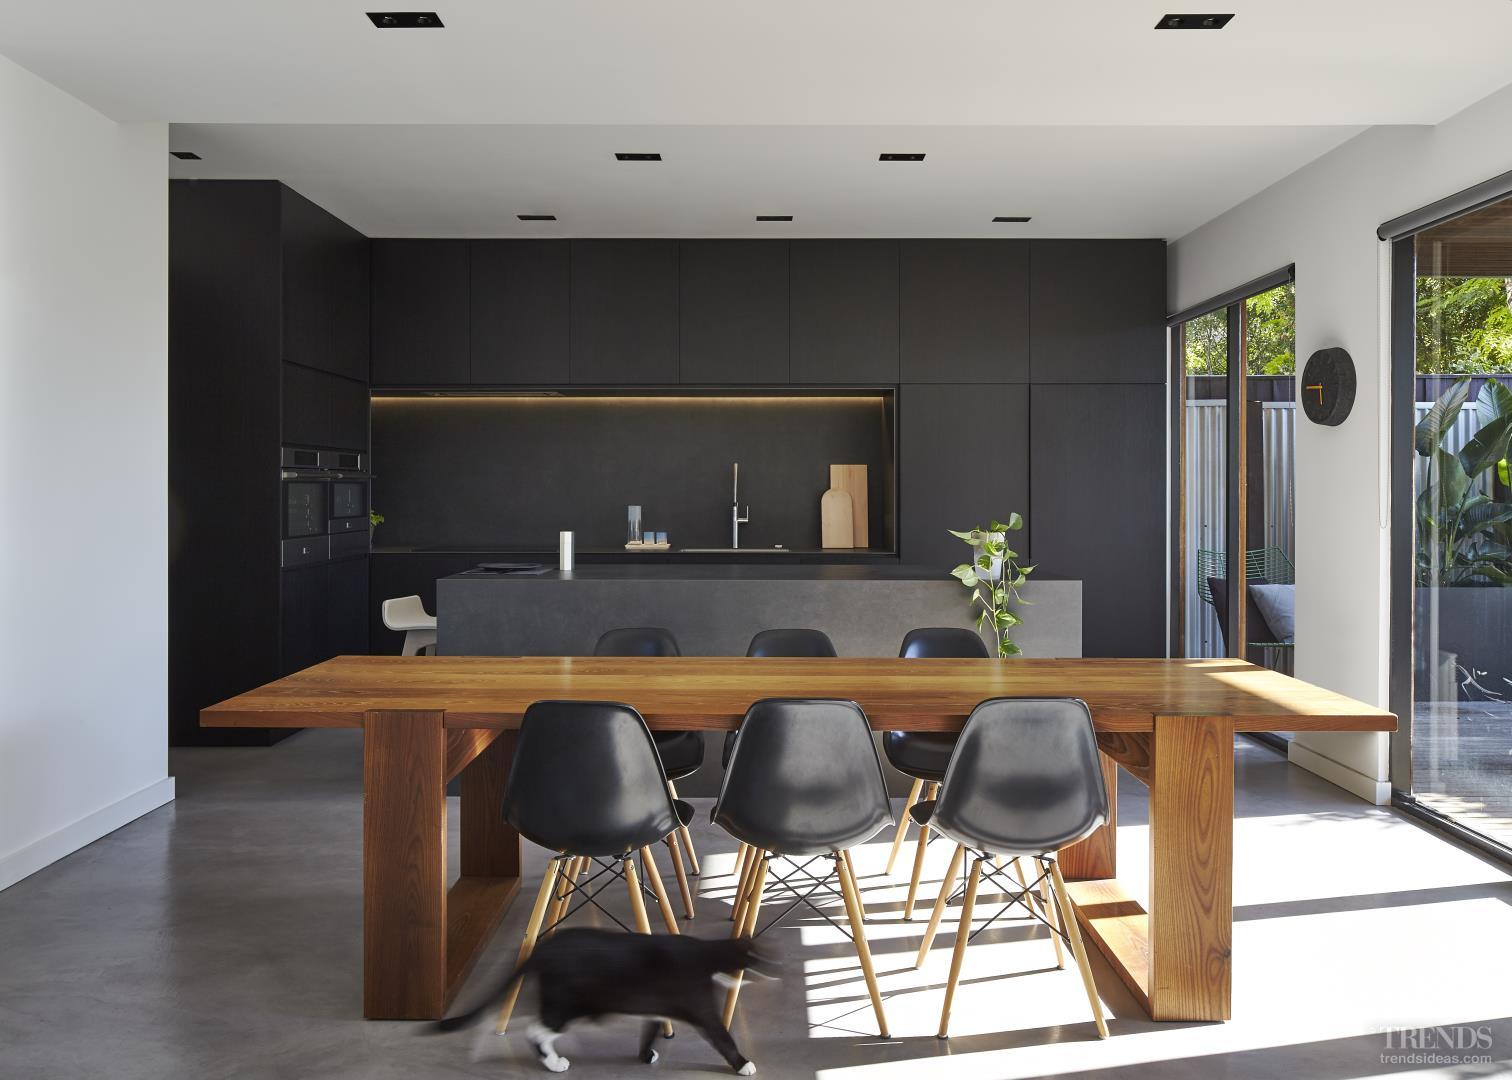 Floor Mirrors Melbourne Sleek Black Kitchen By Owner Architect With Black